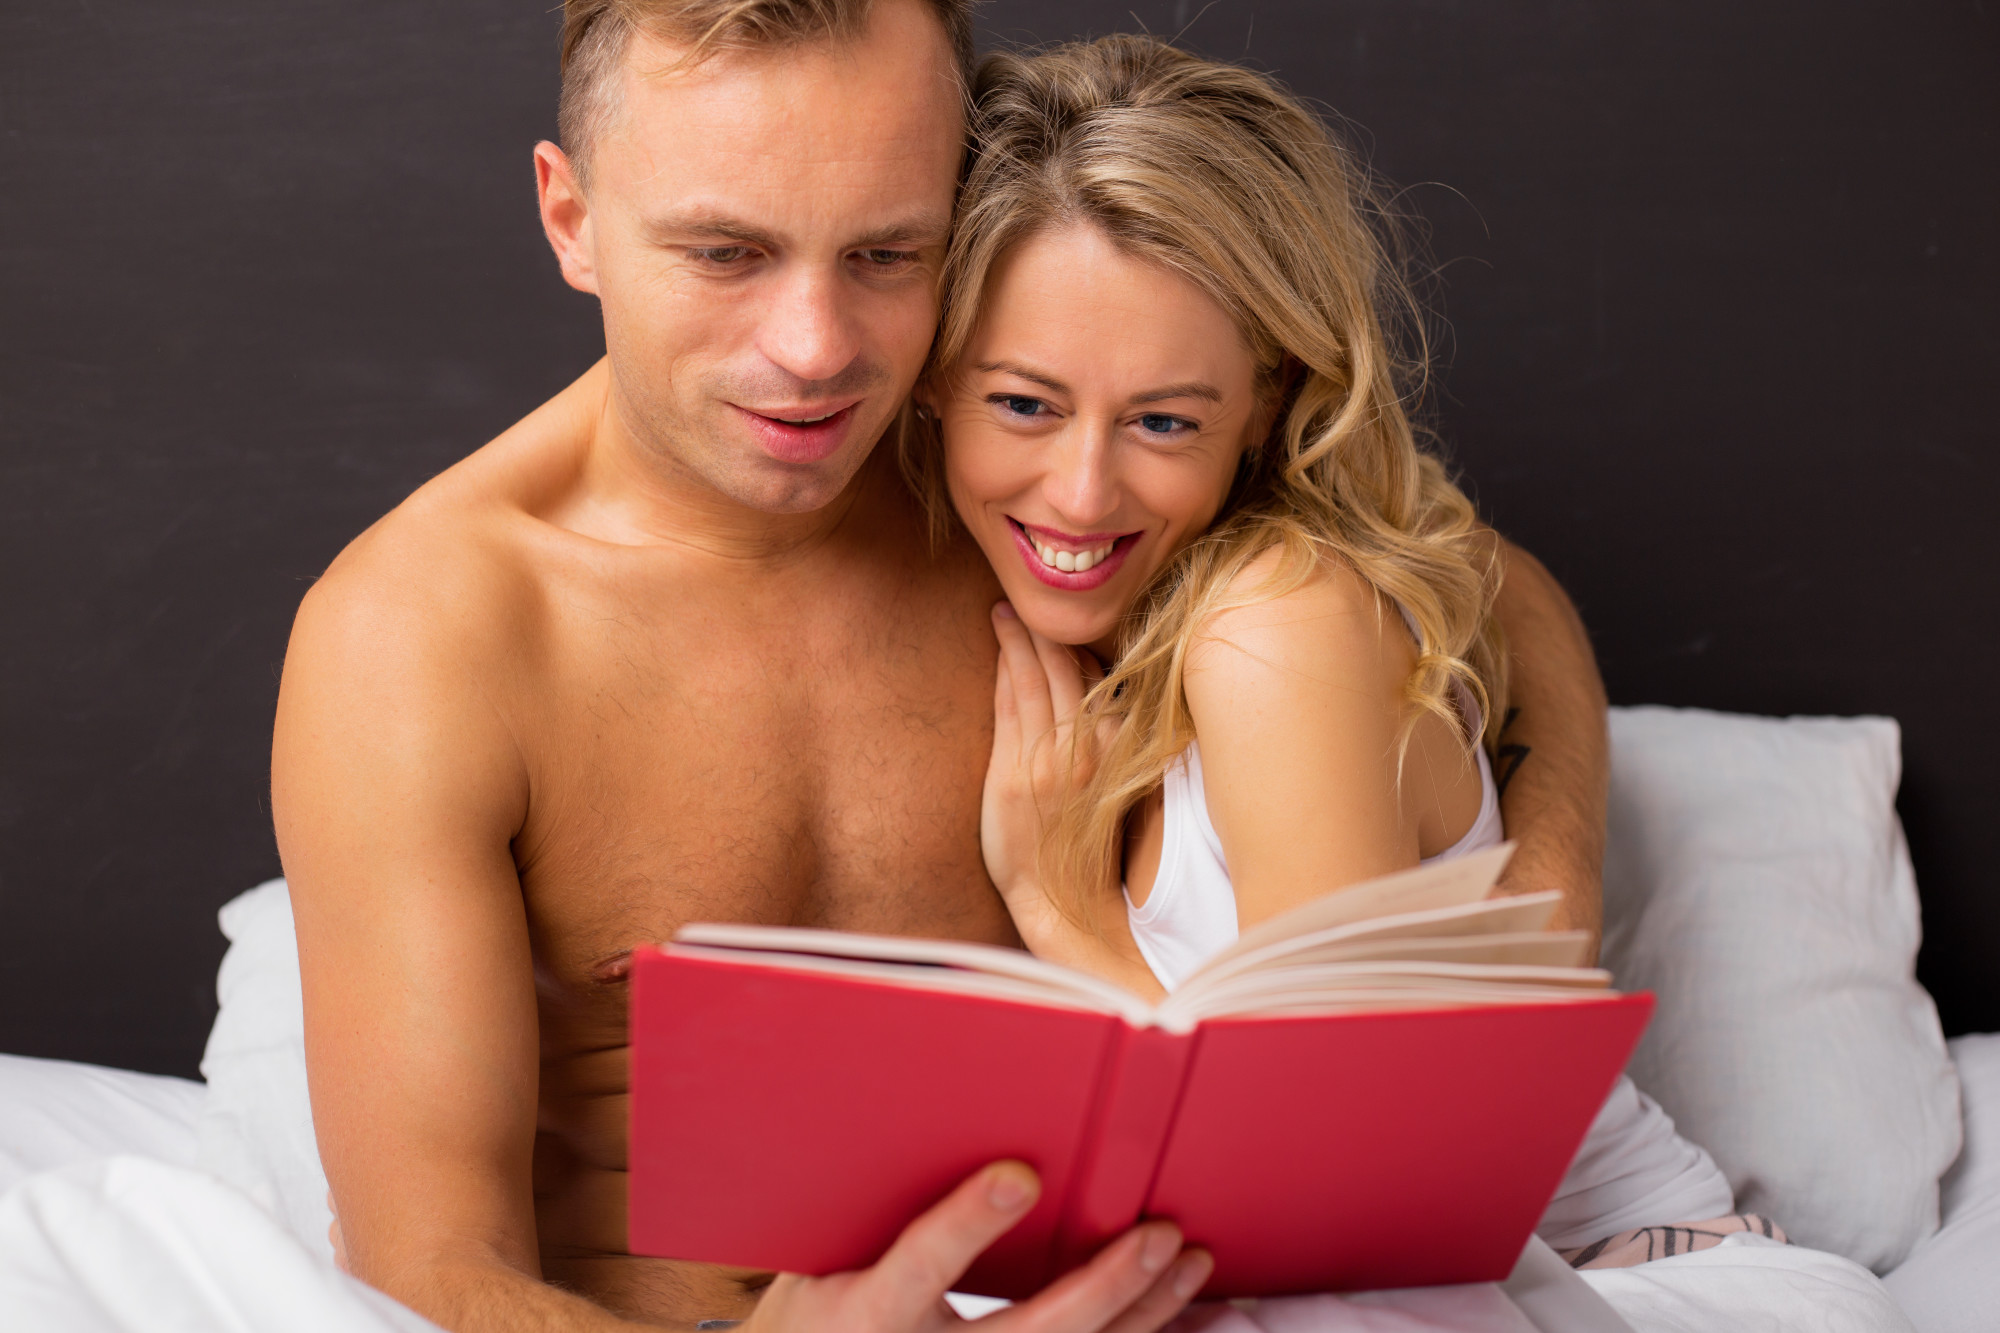 If you are looking for ways to improve your marriage, one factor to consider is your sex life. Here are the top ways to achieve better sex for married couples.